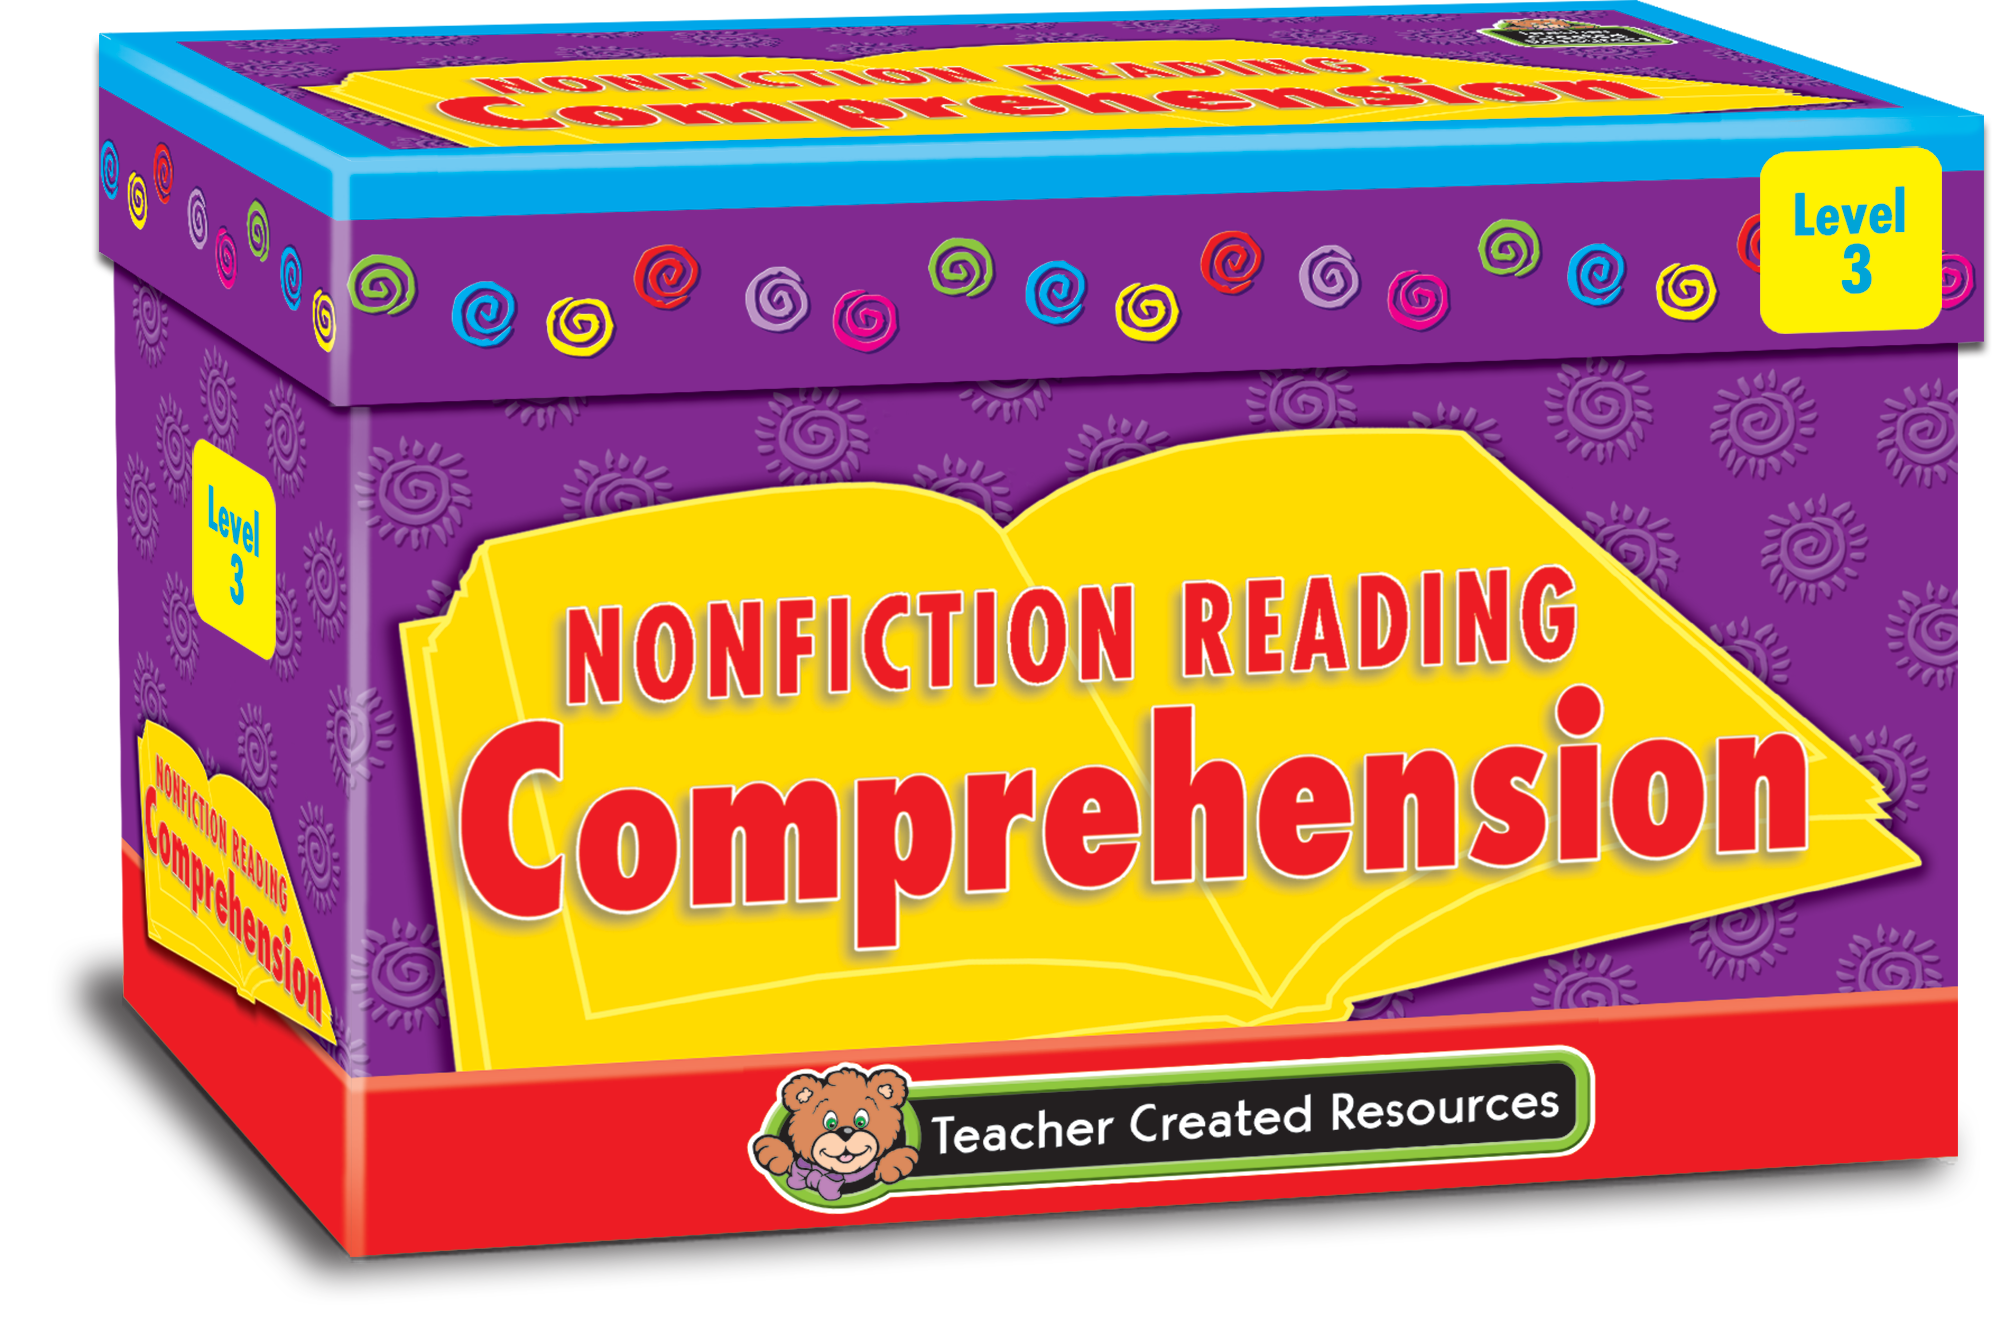 worksheet Nonfiction Reading Comprehension Worksheets nonfiction reading comprehension cards level 3 tcr3055 teacher created resources